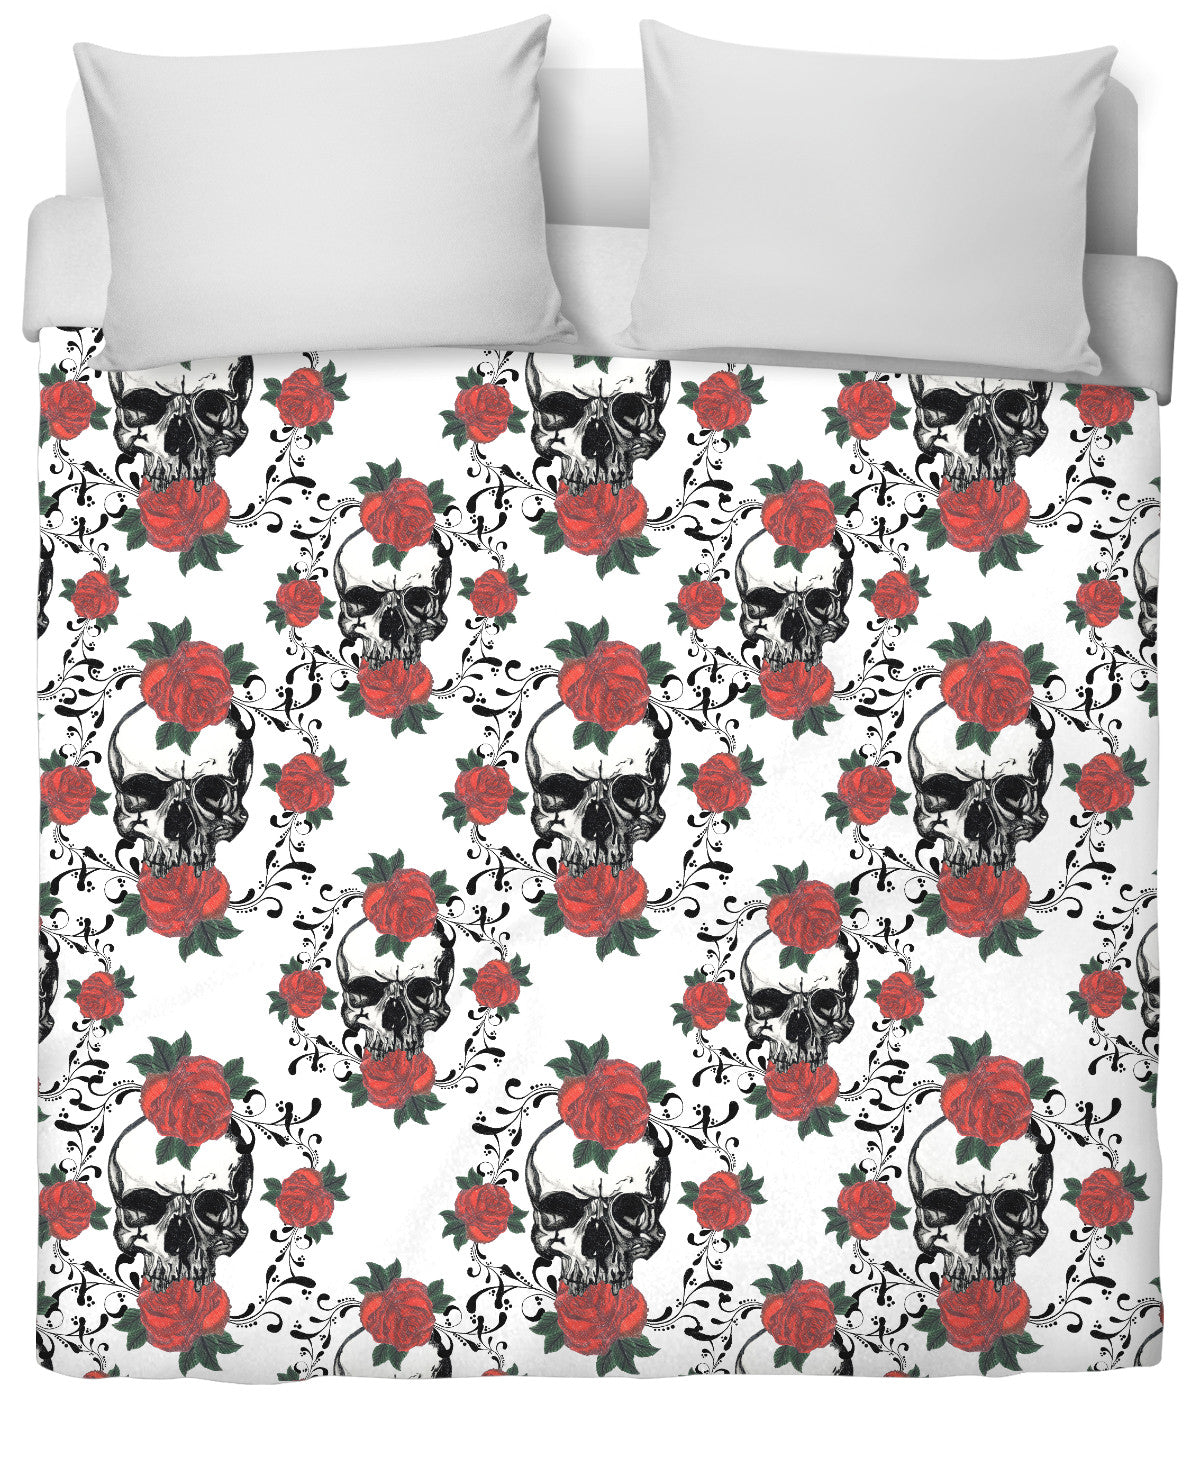 Red Roses and Skulls Duvet